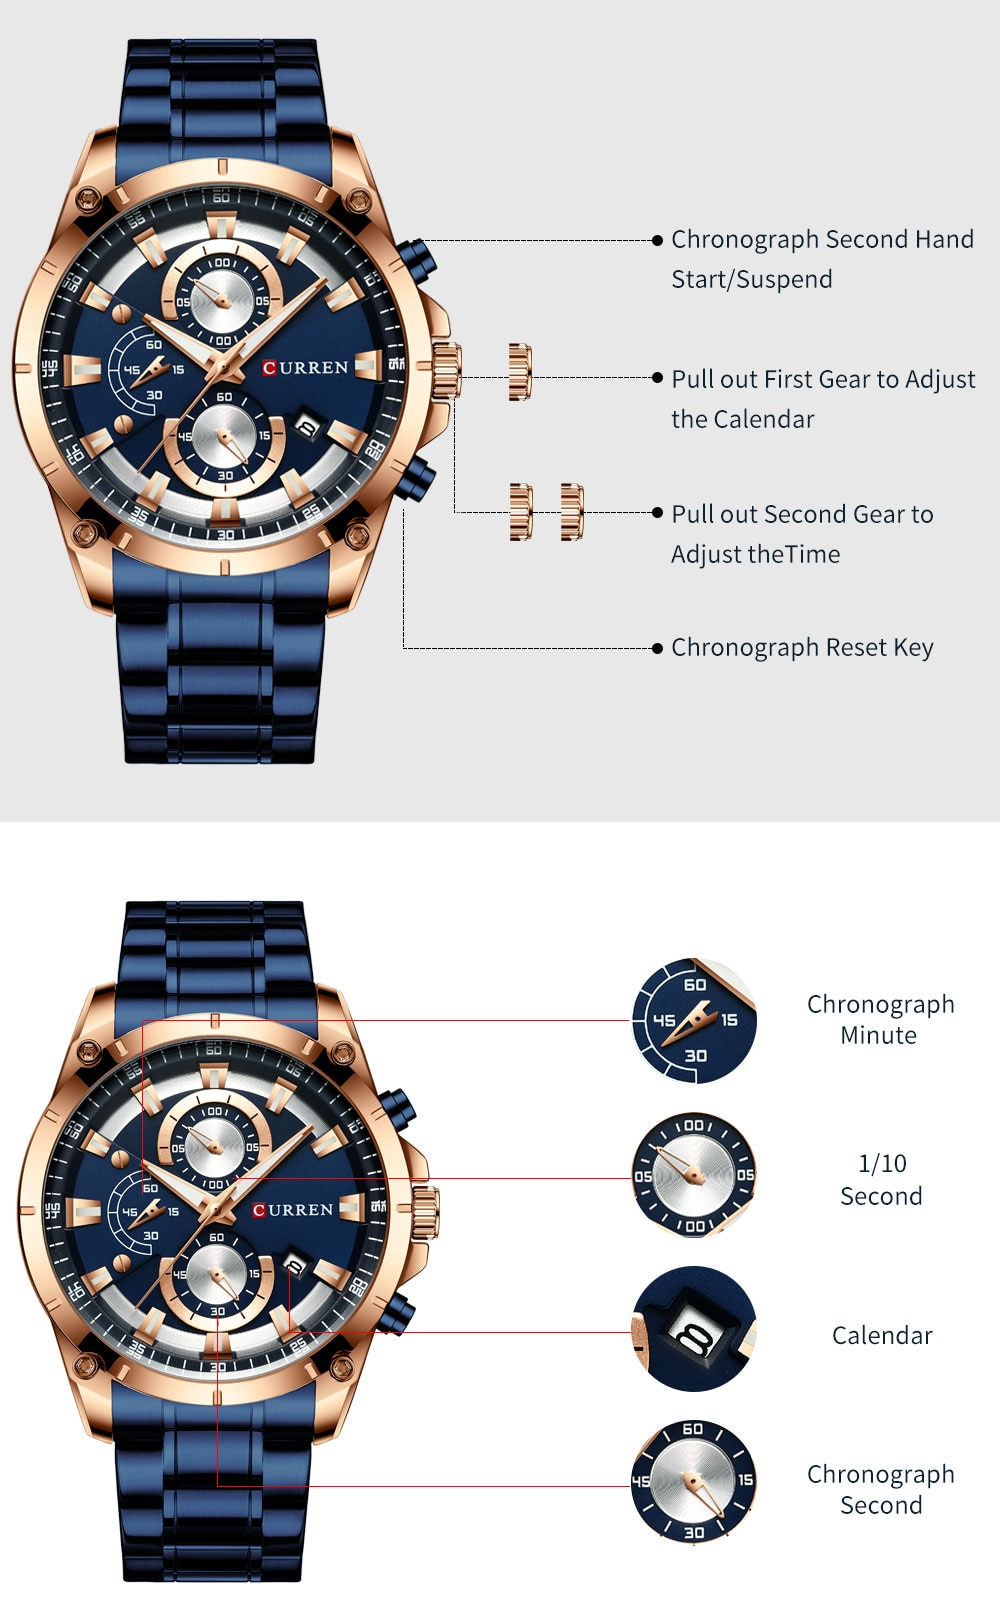 H32defdc0aeb34b9d8f7ae60550762bdaf - CURREN Top Brand Luxury Men Watches Sporty Stainless Steel Band Chronograph Quartz Wristwatch with Auto Date Relogio Masculino